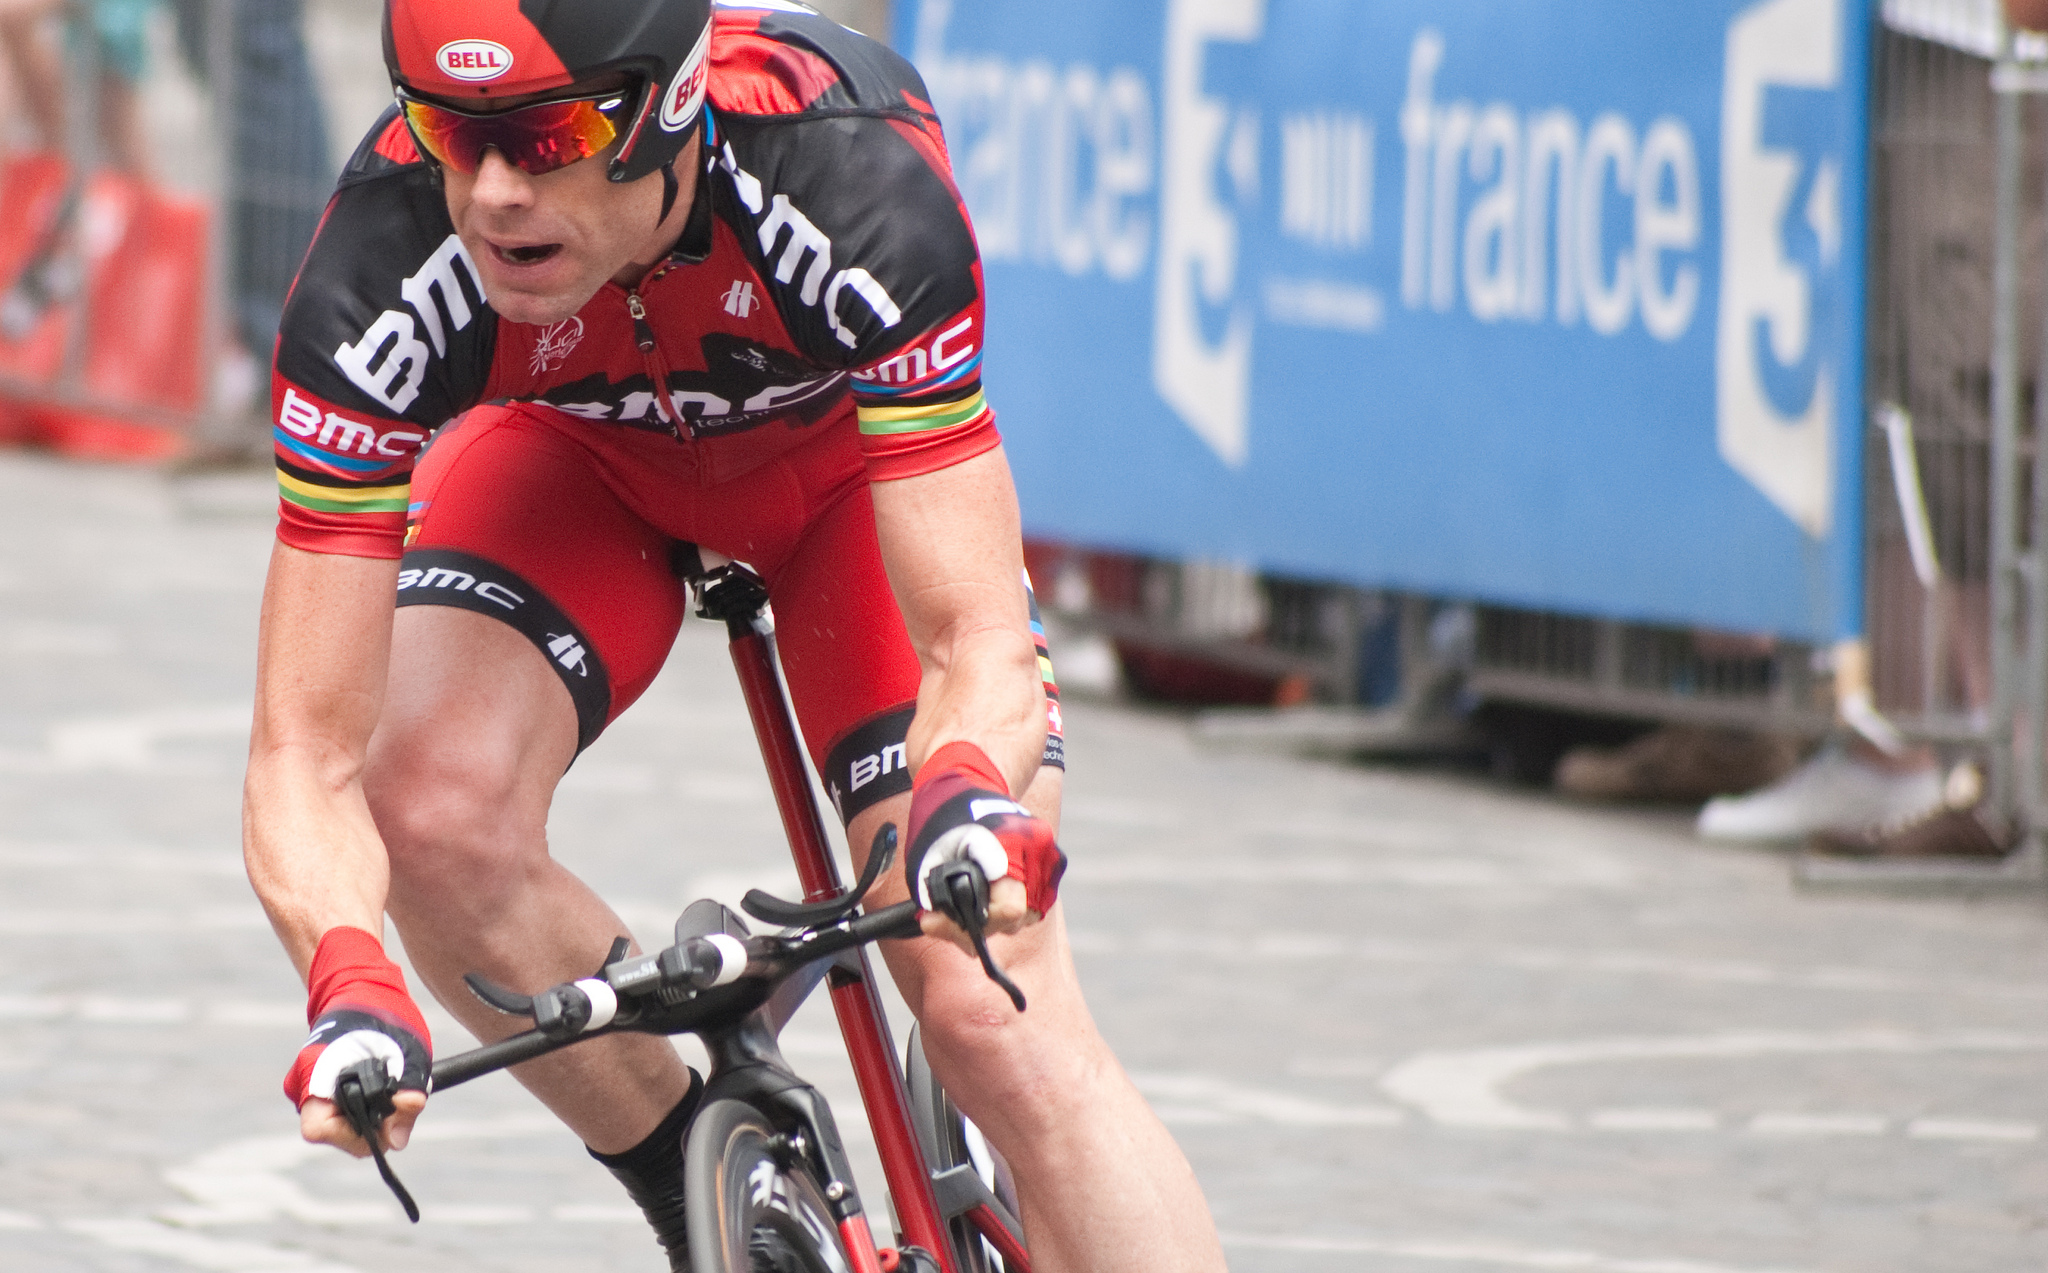 Prologue to Stage 10